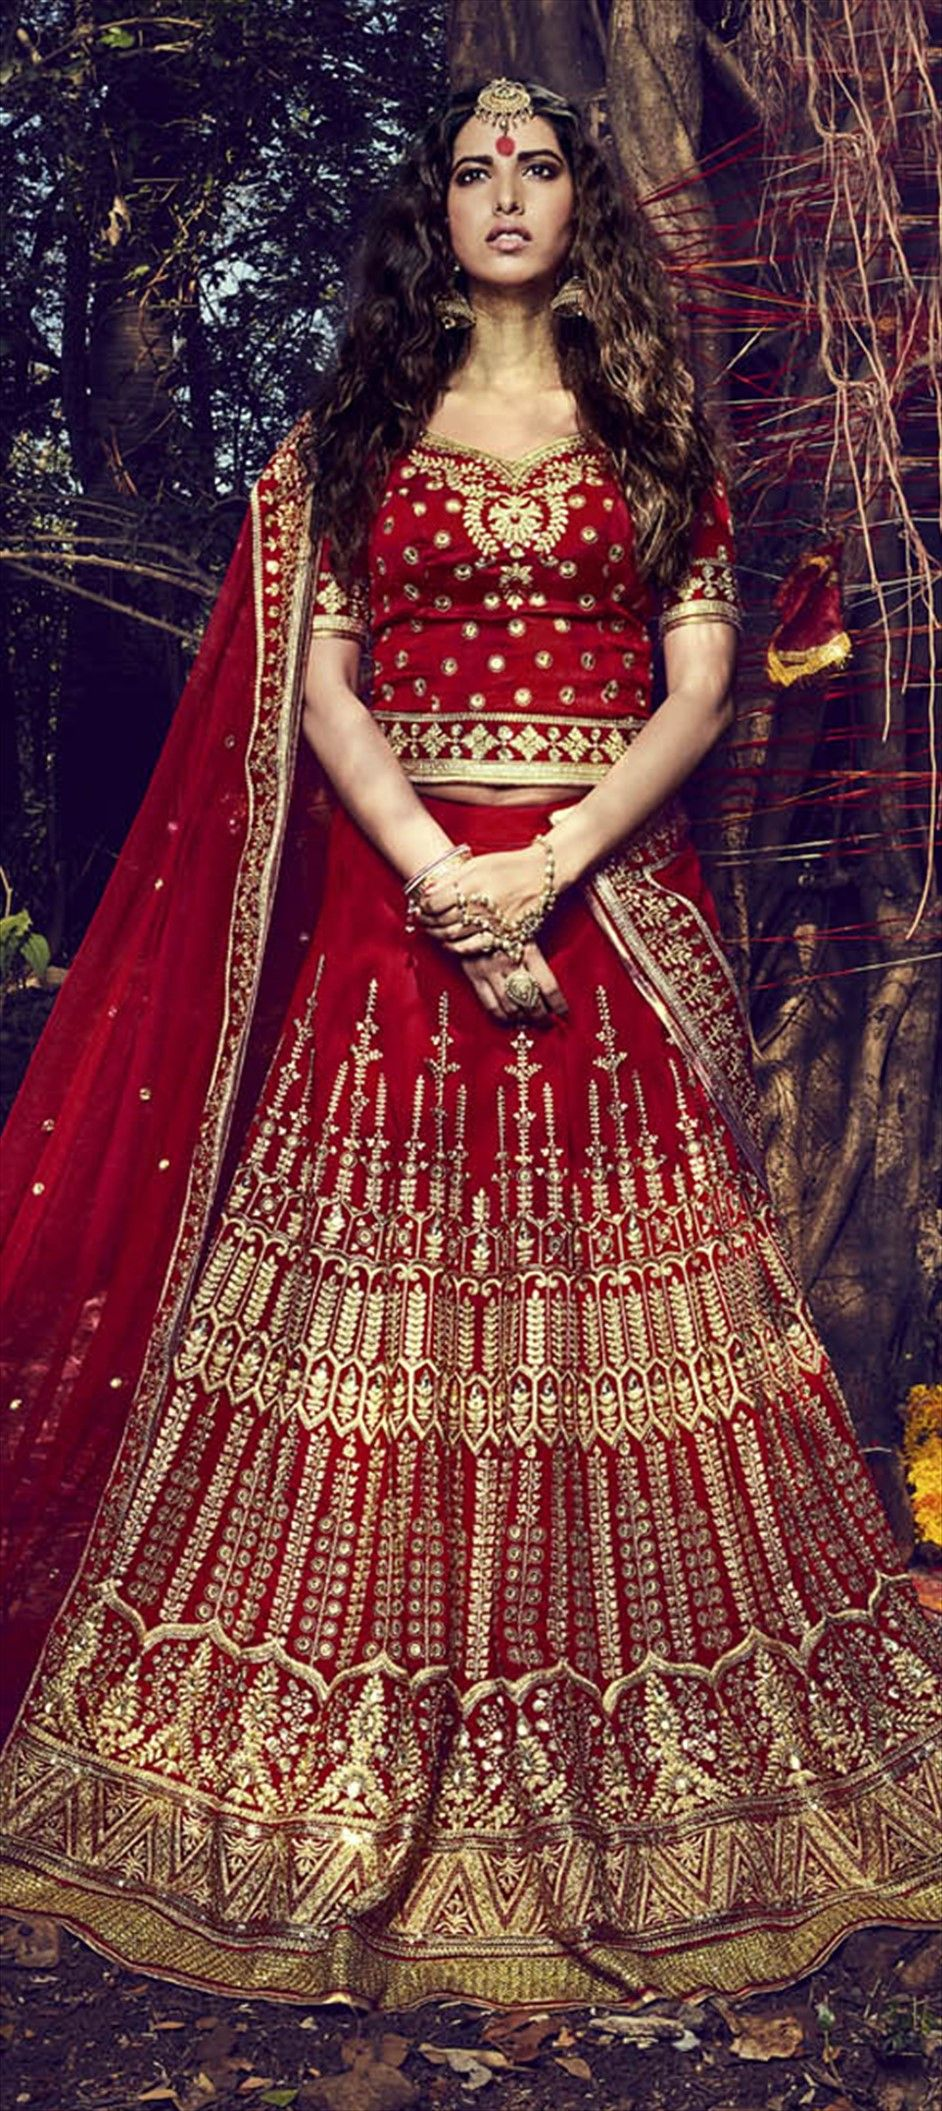 732153: Red and Maroon color family Brides maid Lehenga, Mehendi ...